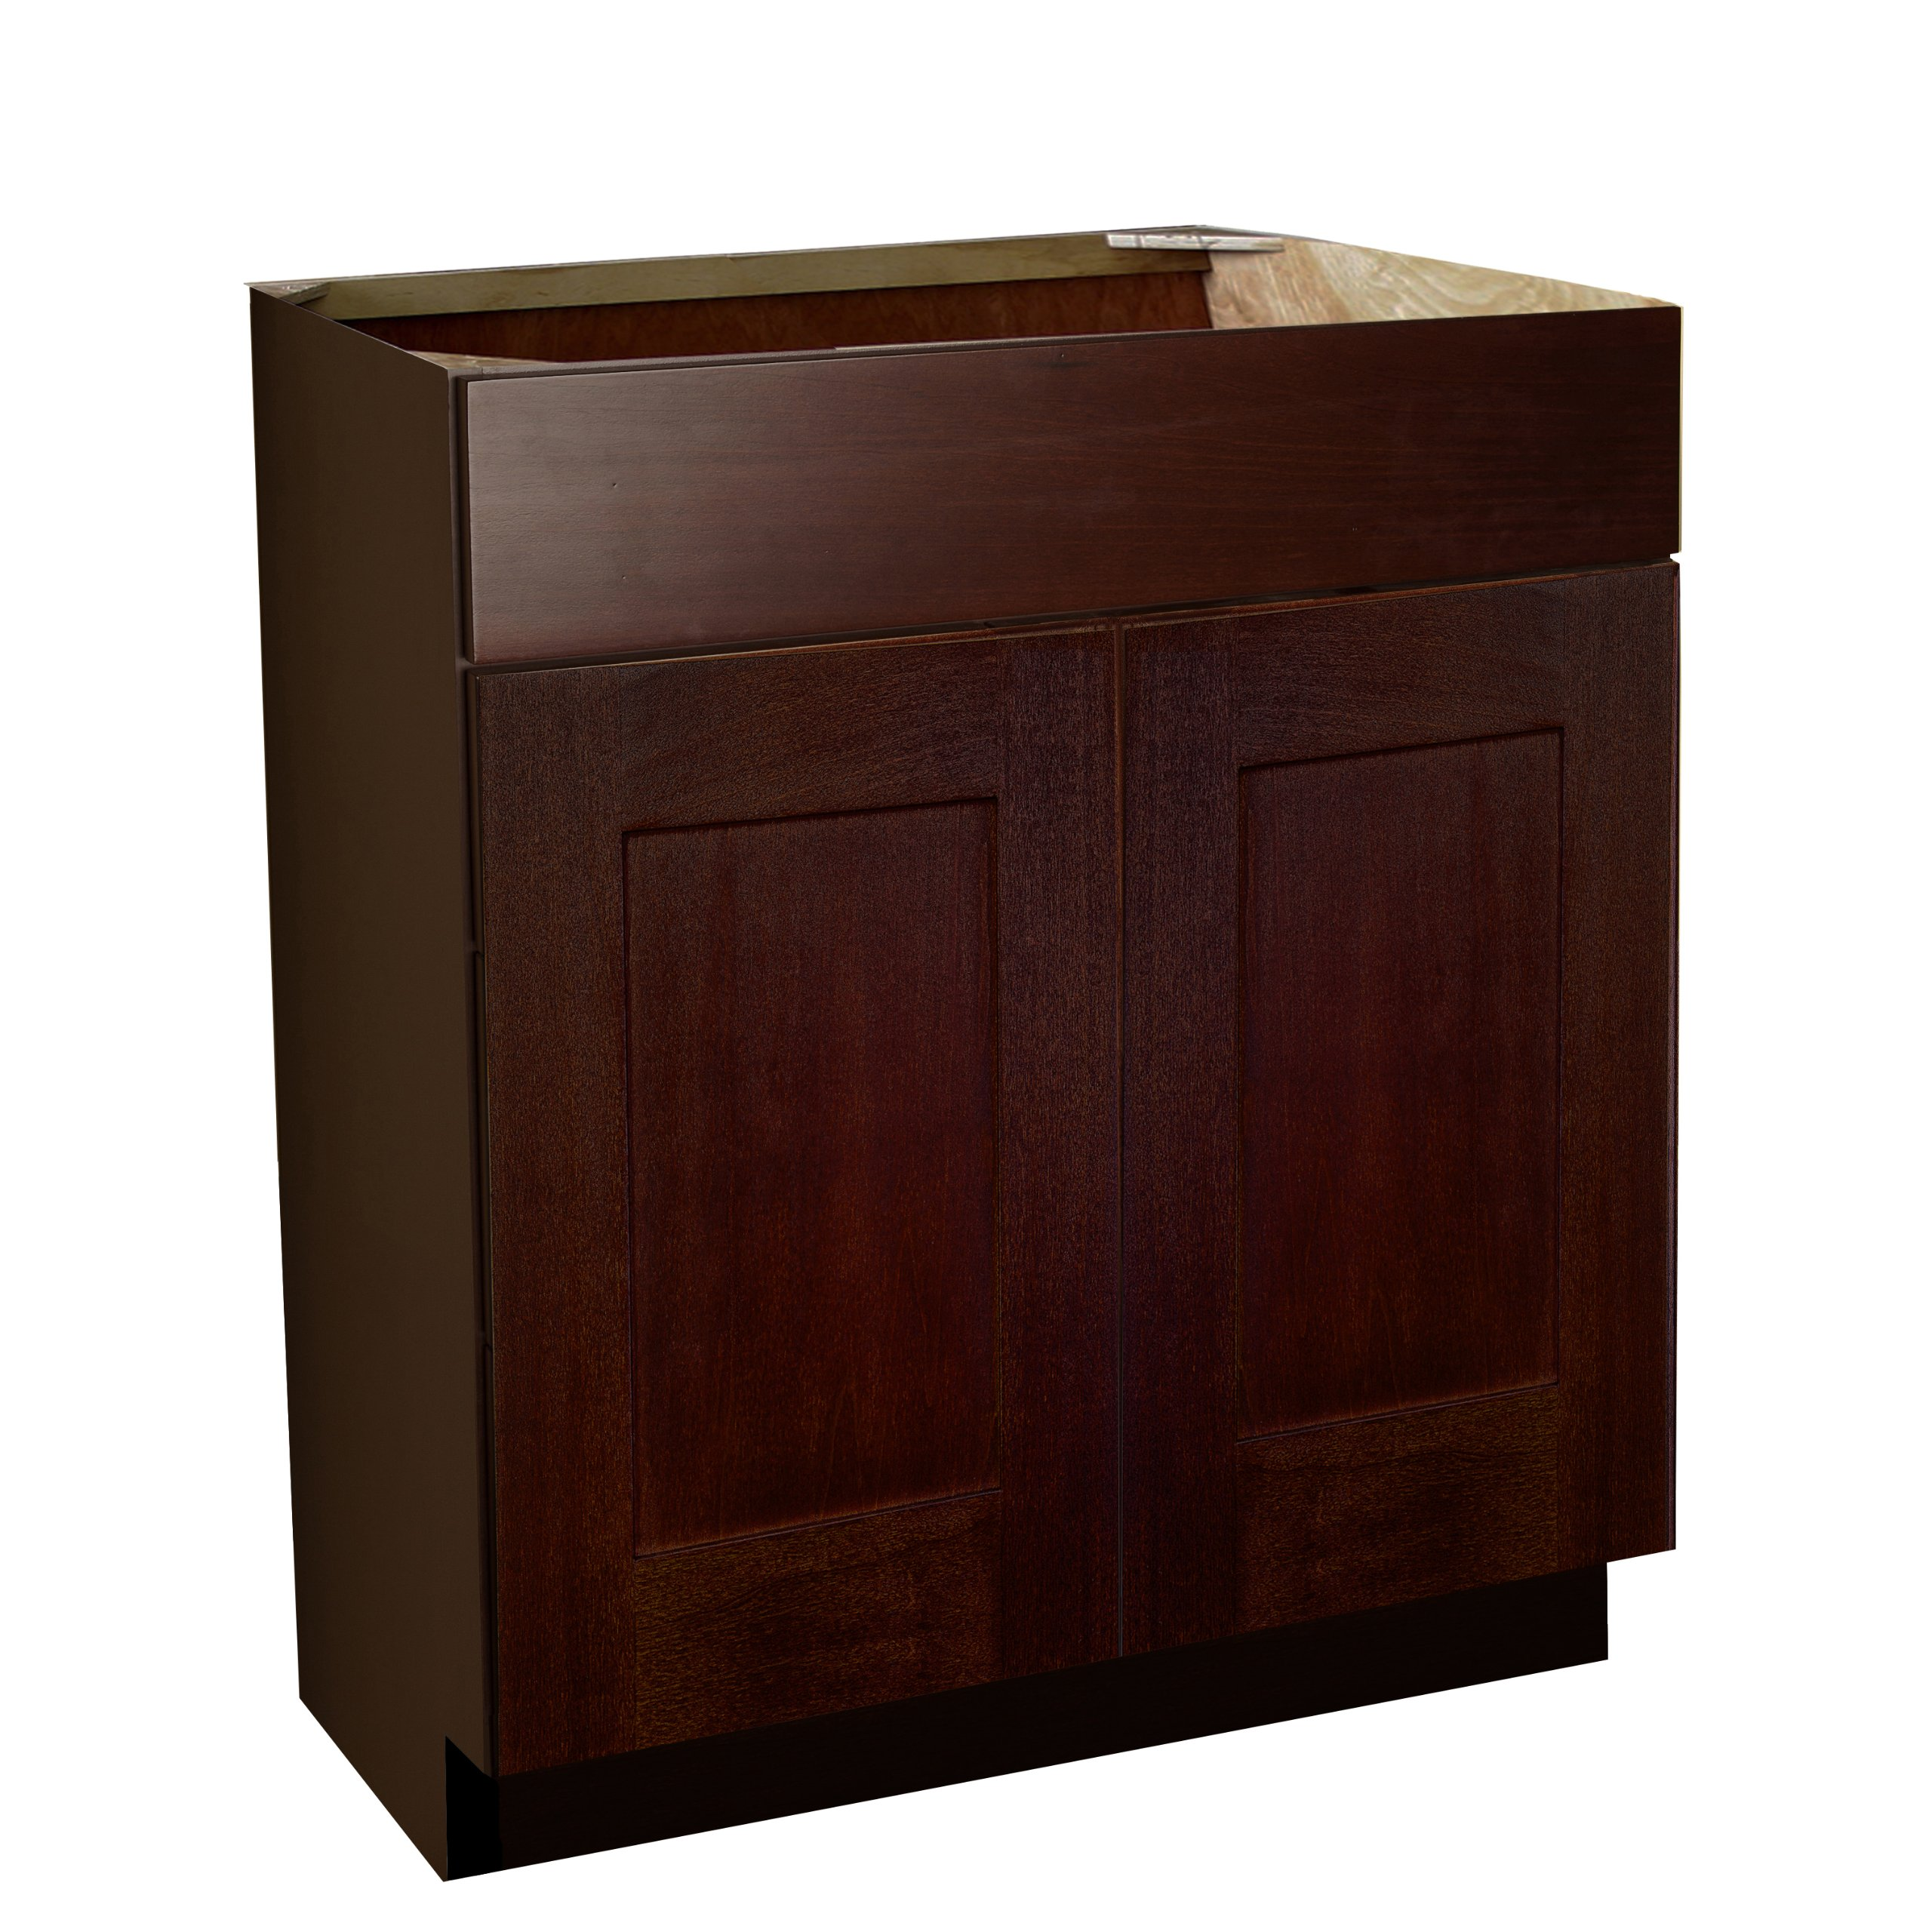 Shaker Panel Door Style Vanity Sink Base 24'' Wide 18'' Deep 30'' High in a Maple Walnut Finish Model VSB241830-SW by Harbor City Millwork